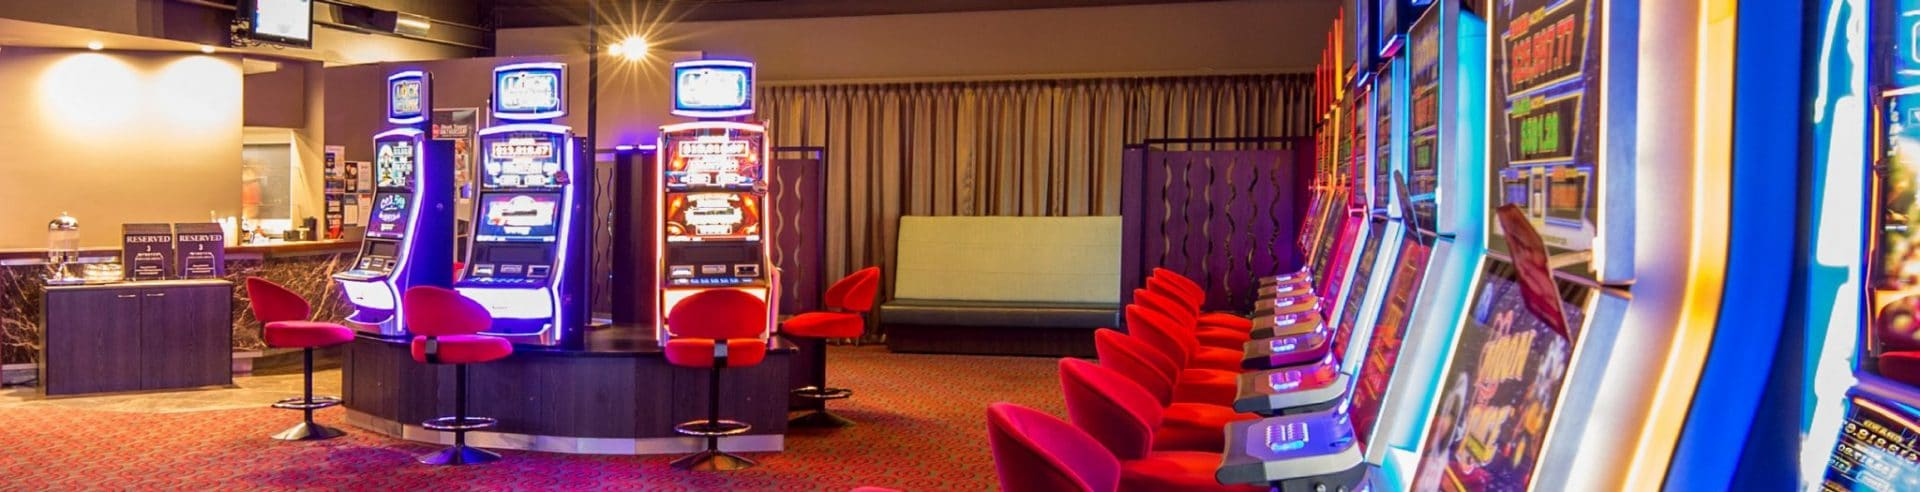 Gaming Lounge at Tingalpa Hotel